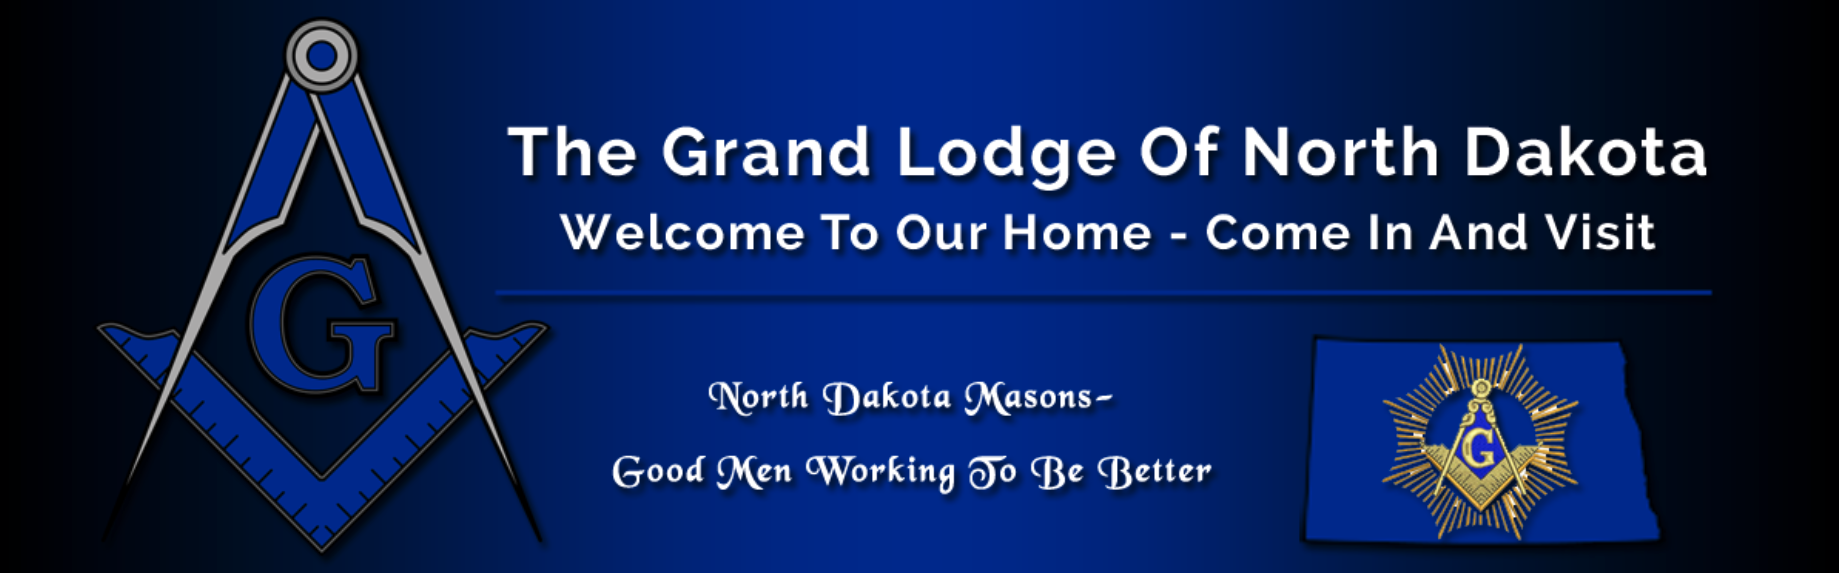 ND Masonic Lodge website header